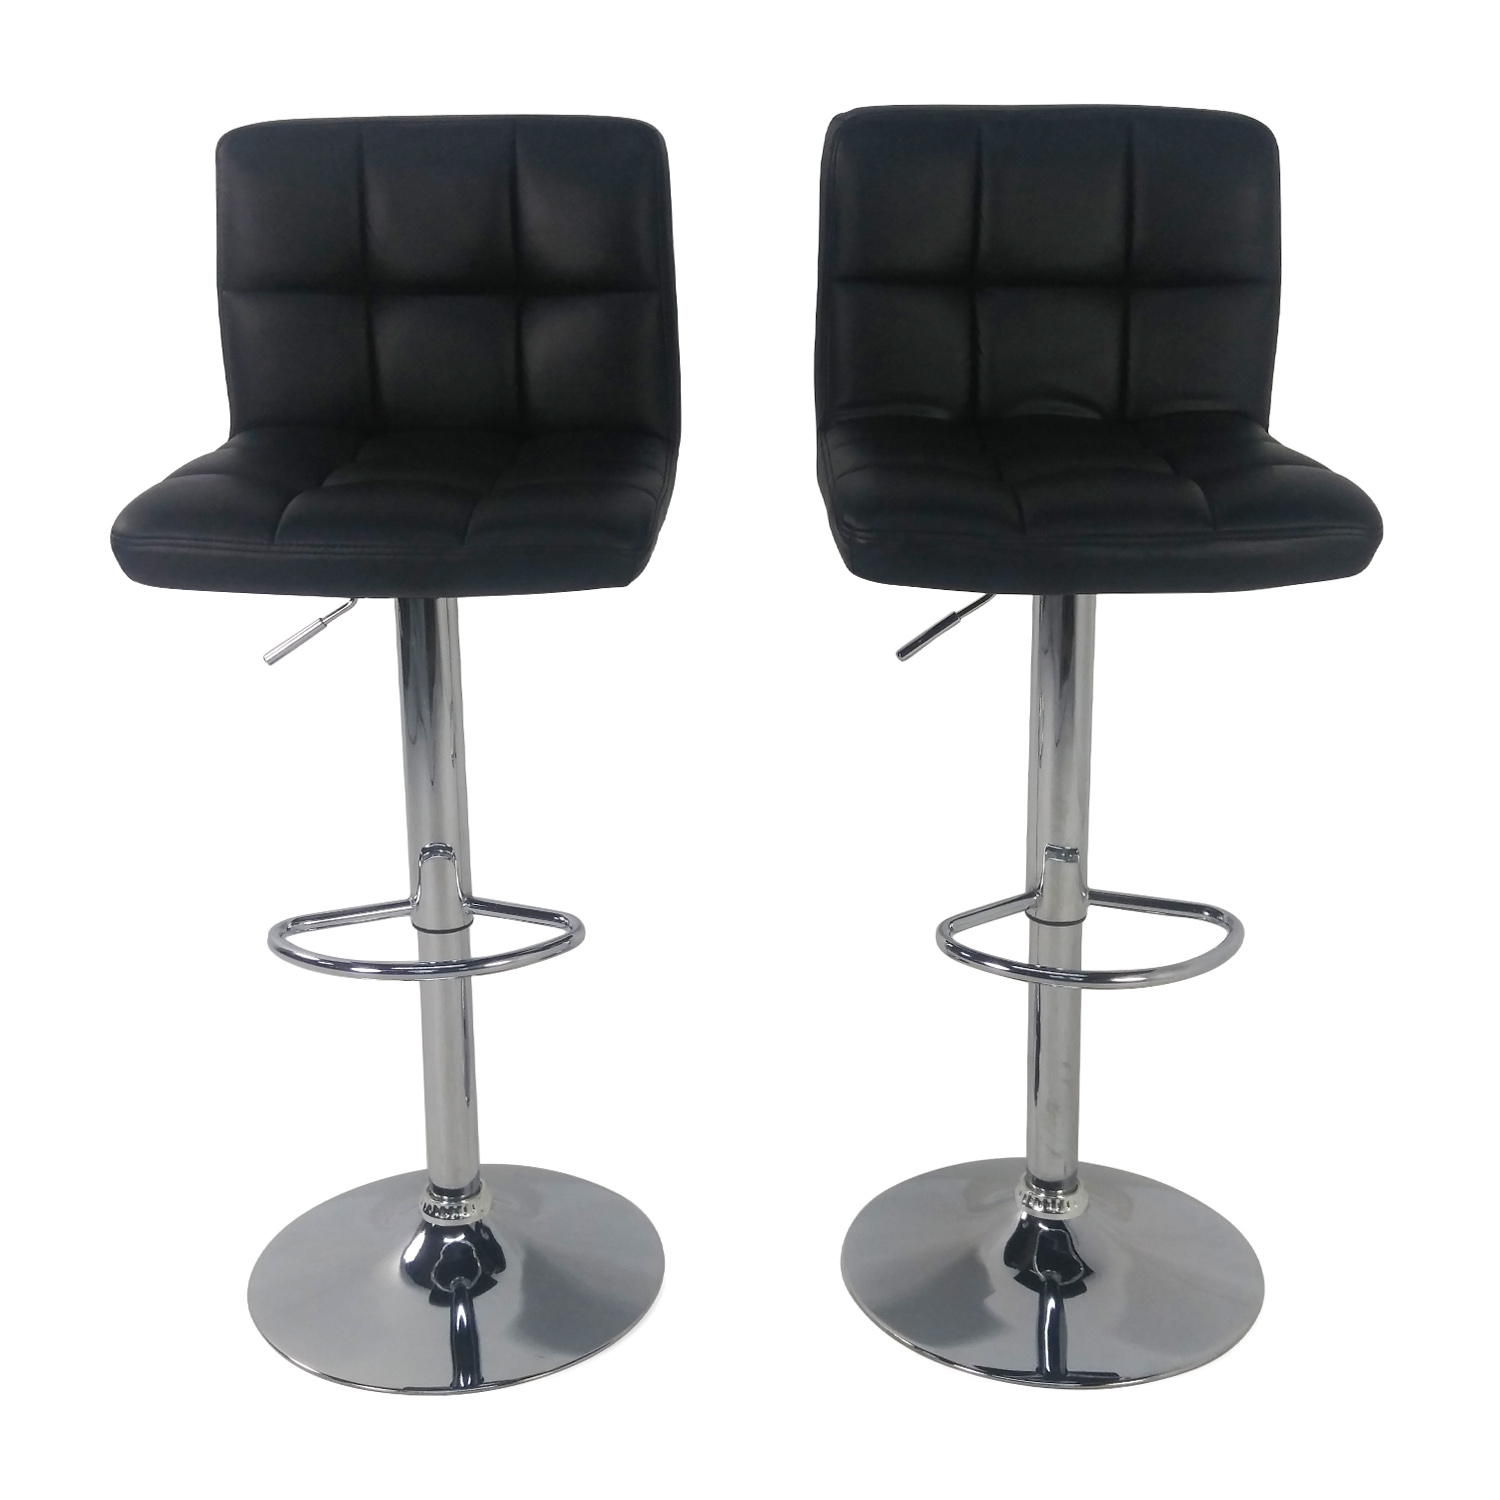 Roundhill Roundhill Black Adjustable Swivel Chairs used  sc 1 st  Furnishare & 40% OFF - IKEA IKEA White Glen Bar Stools / Chairs islam-shia.org